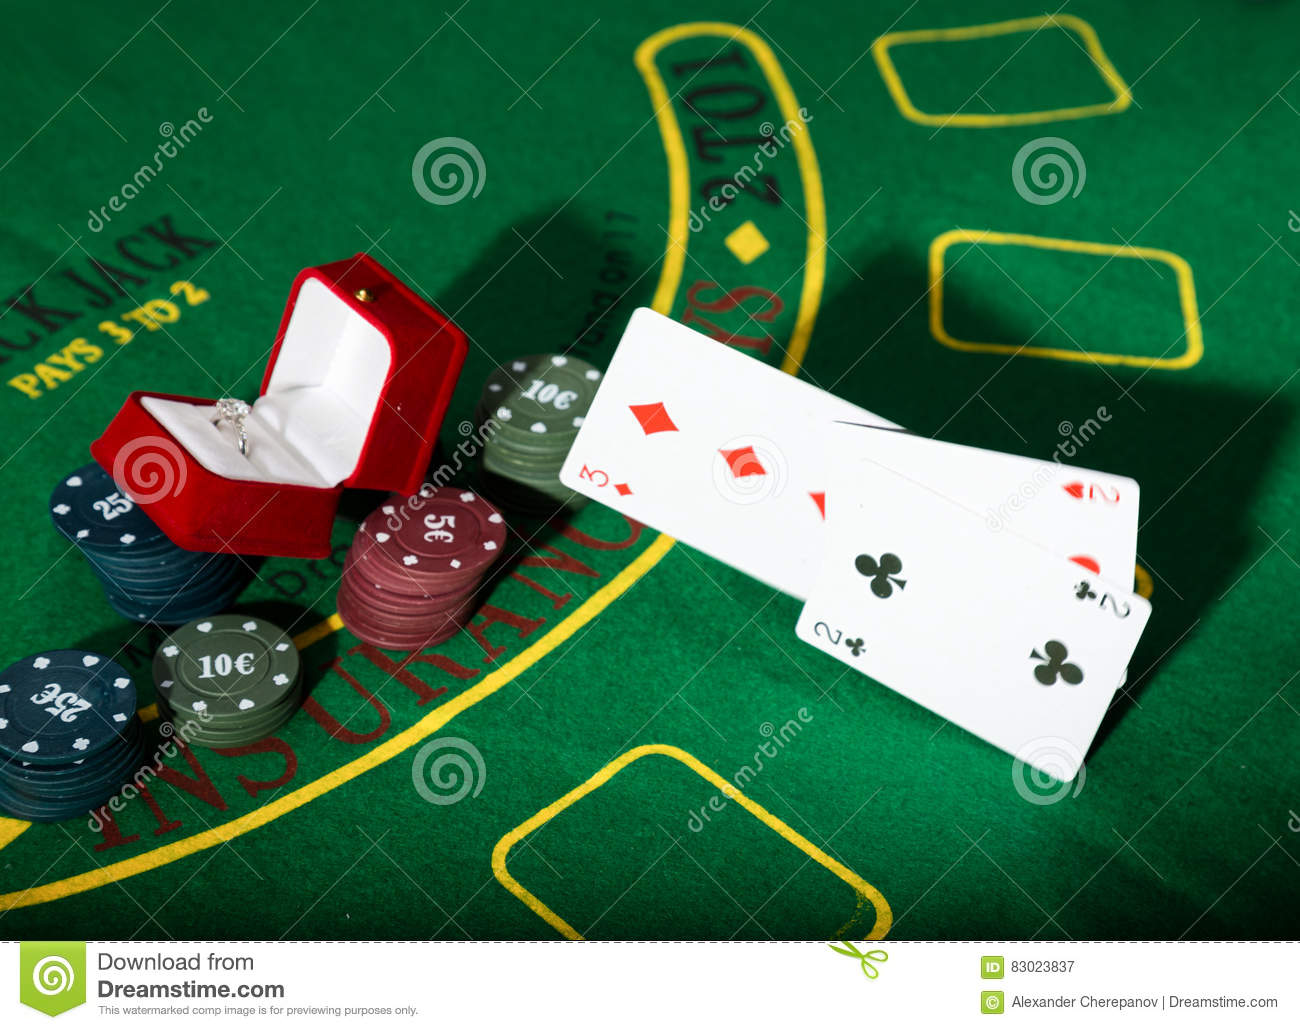 Poker table background - Casino Chips And A Precious Ring On Green Poker Table Background Man Throws Cards With